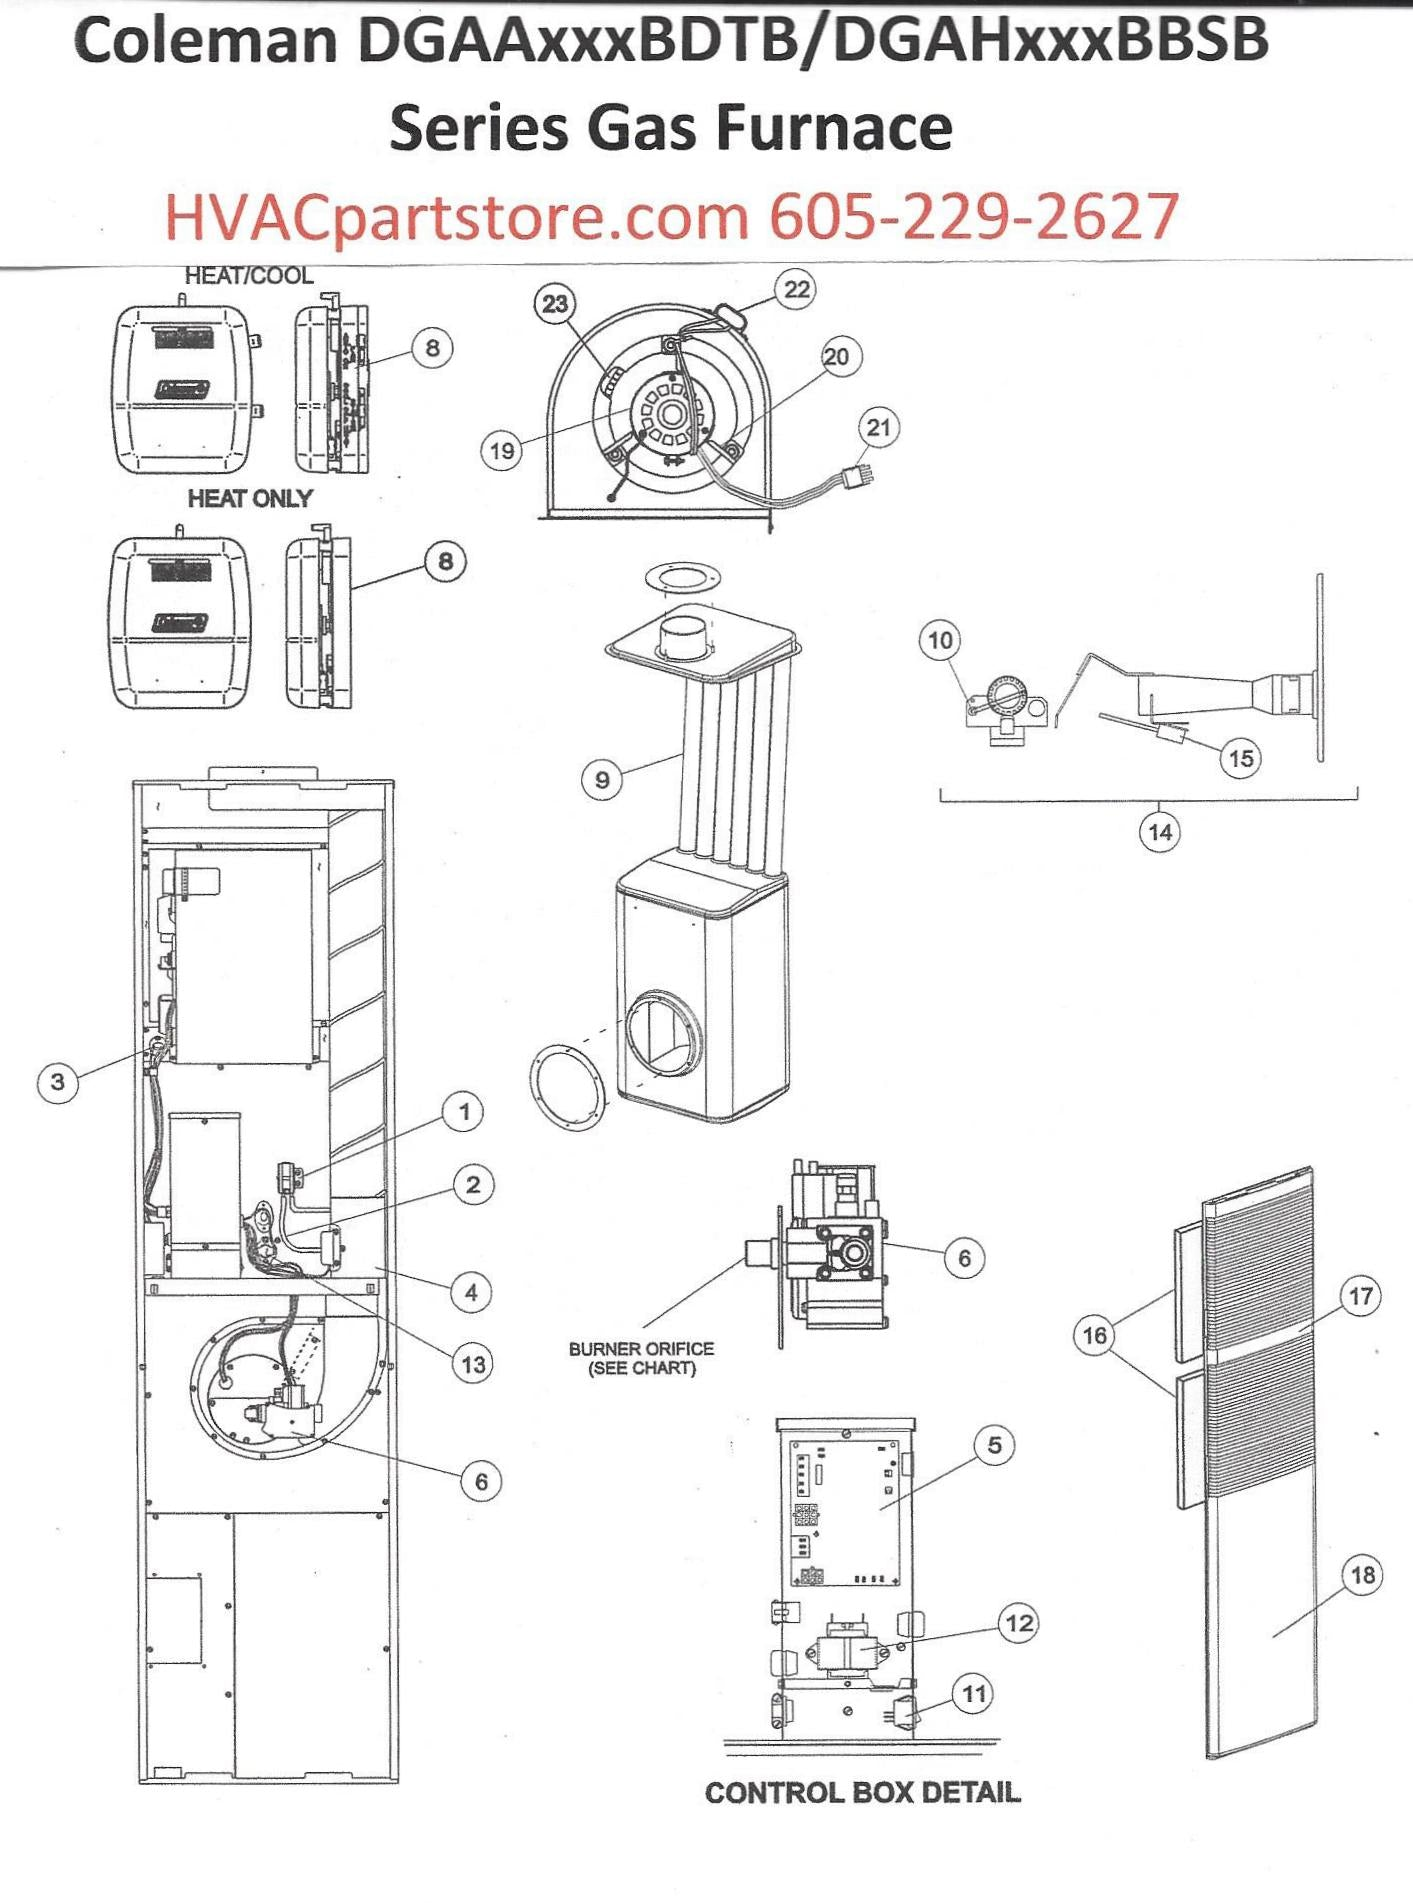 Coleman Furnace Wiring Diagram Gas - Www.toyskids.co • on